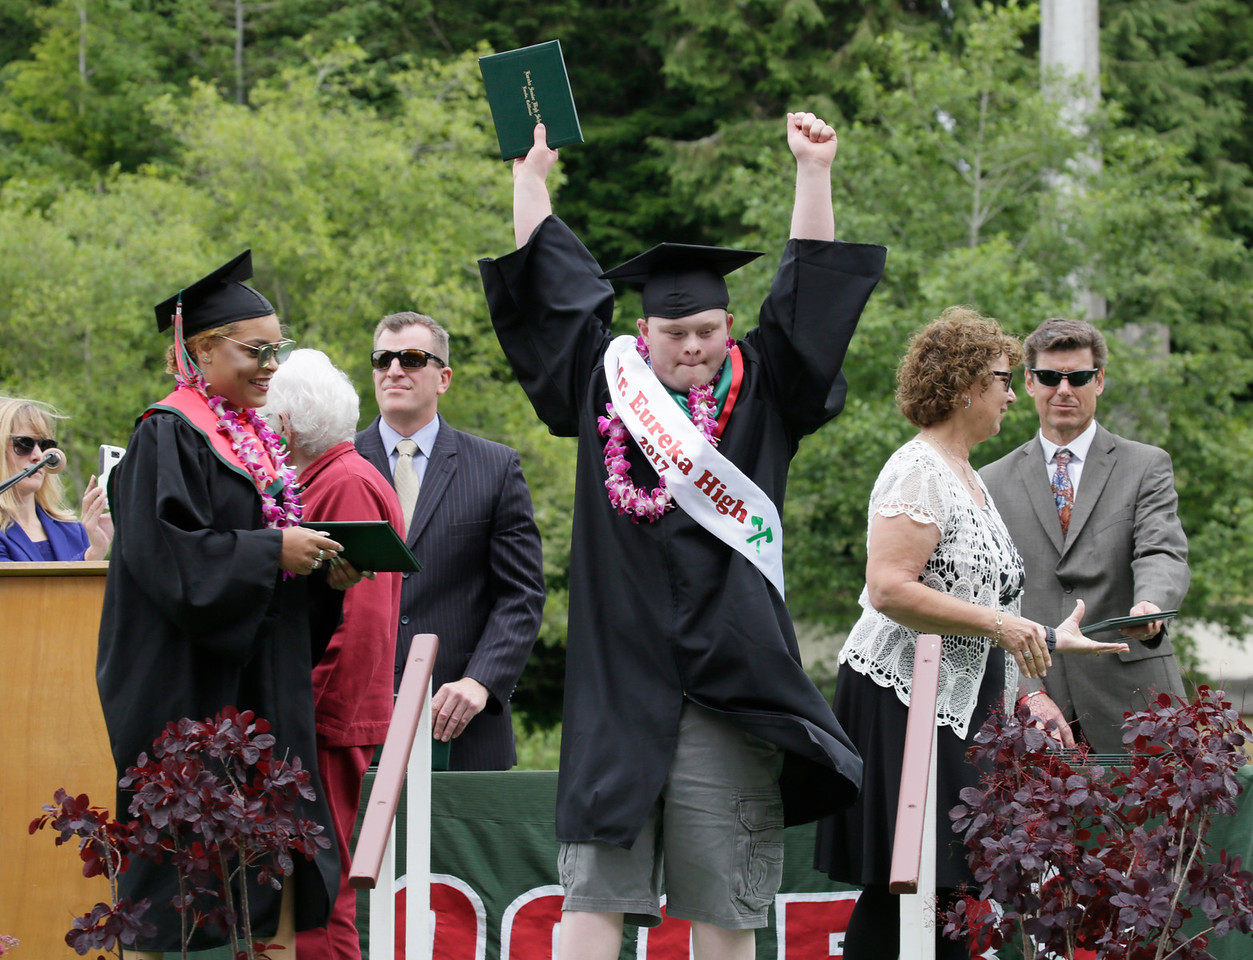 Shaun Walker — The Times-Standard  David Henry Stratman celebrates after getting his diploma at Eureka High School's graduation ceremony on Friday. The school graduated about 250 seniors in Albee Stadium.